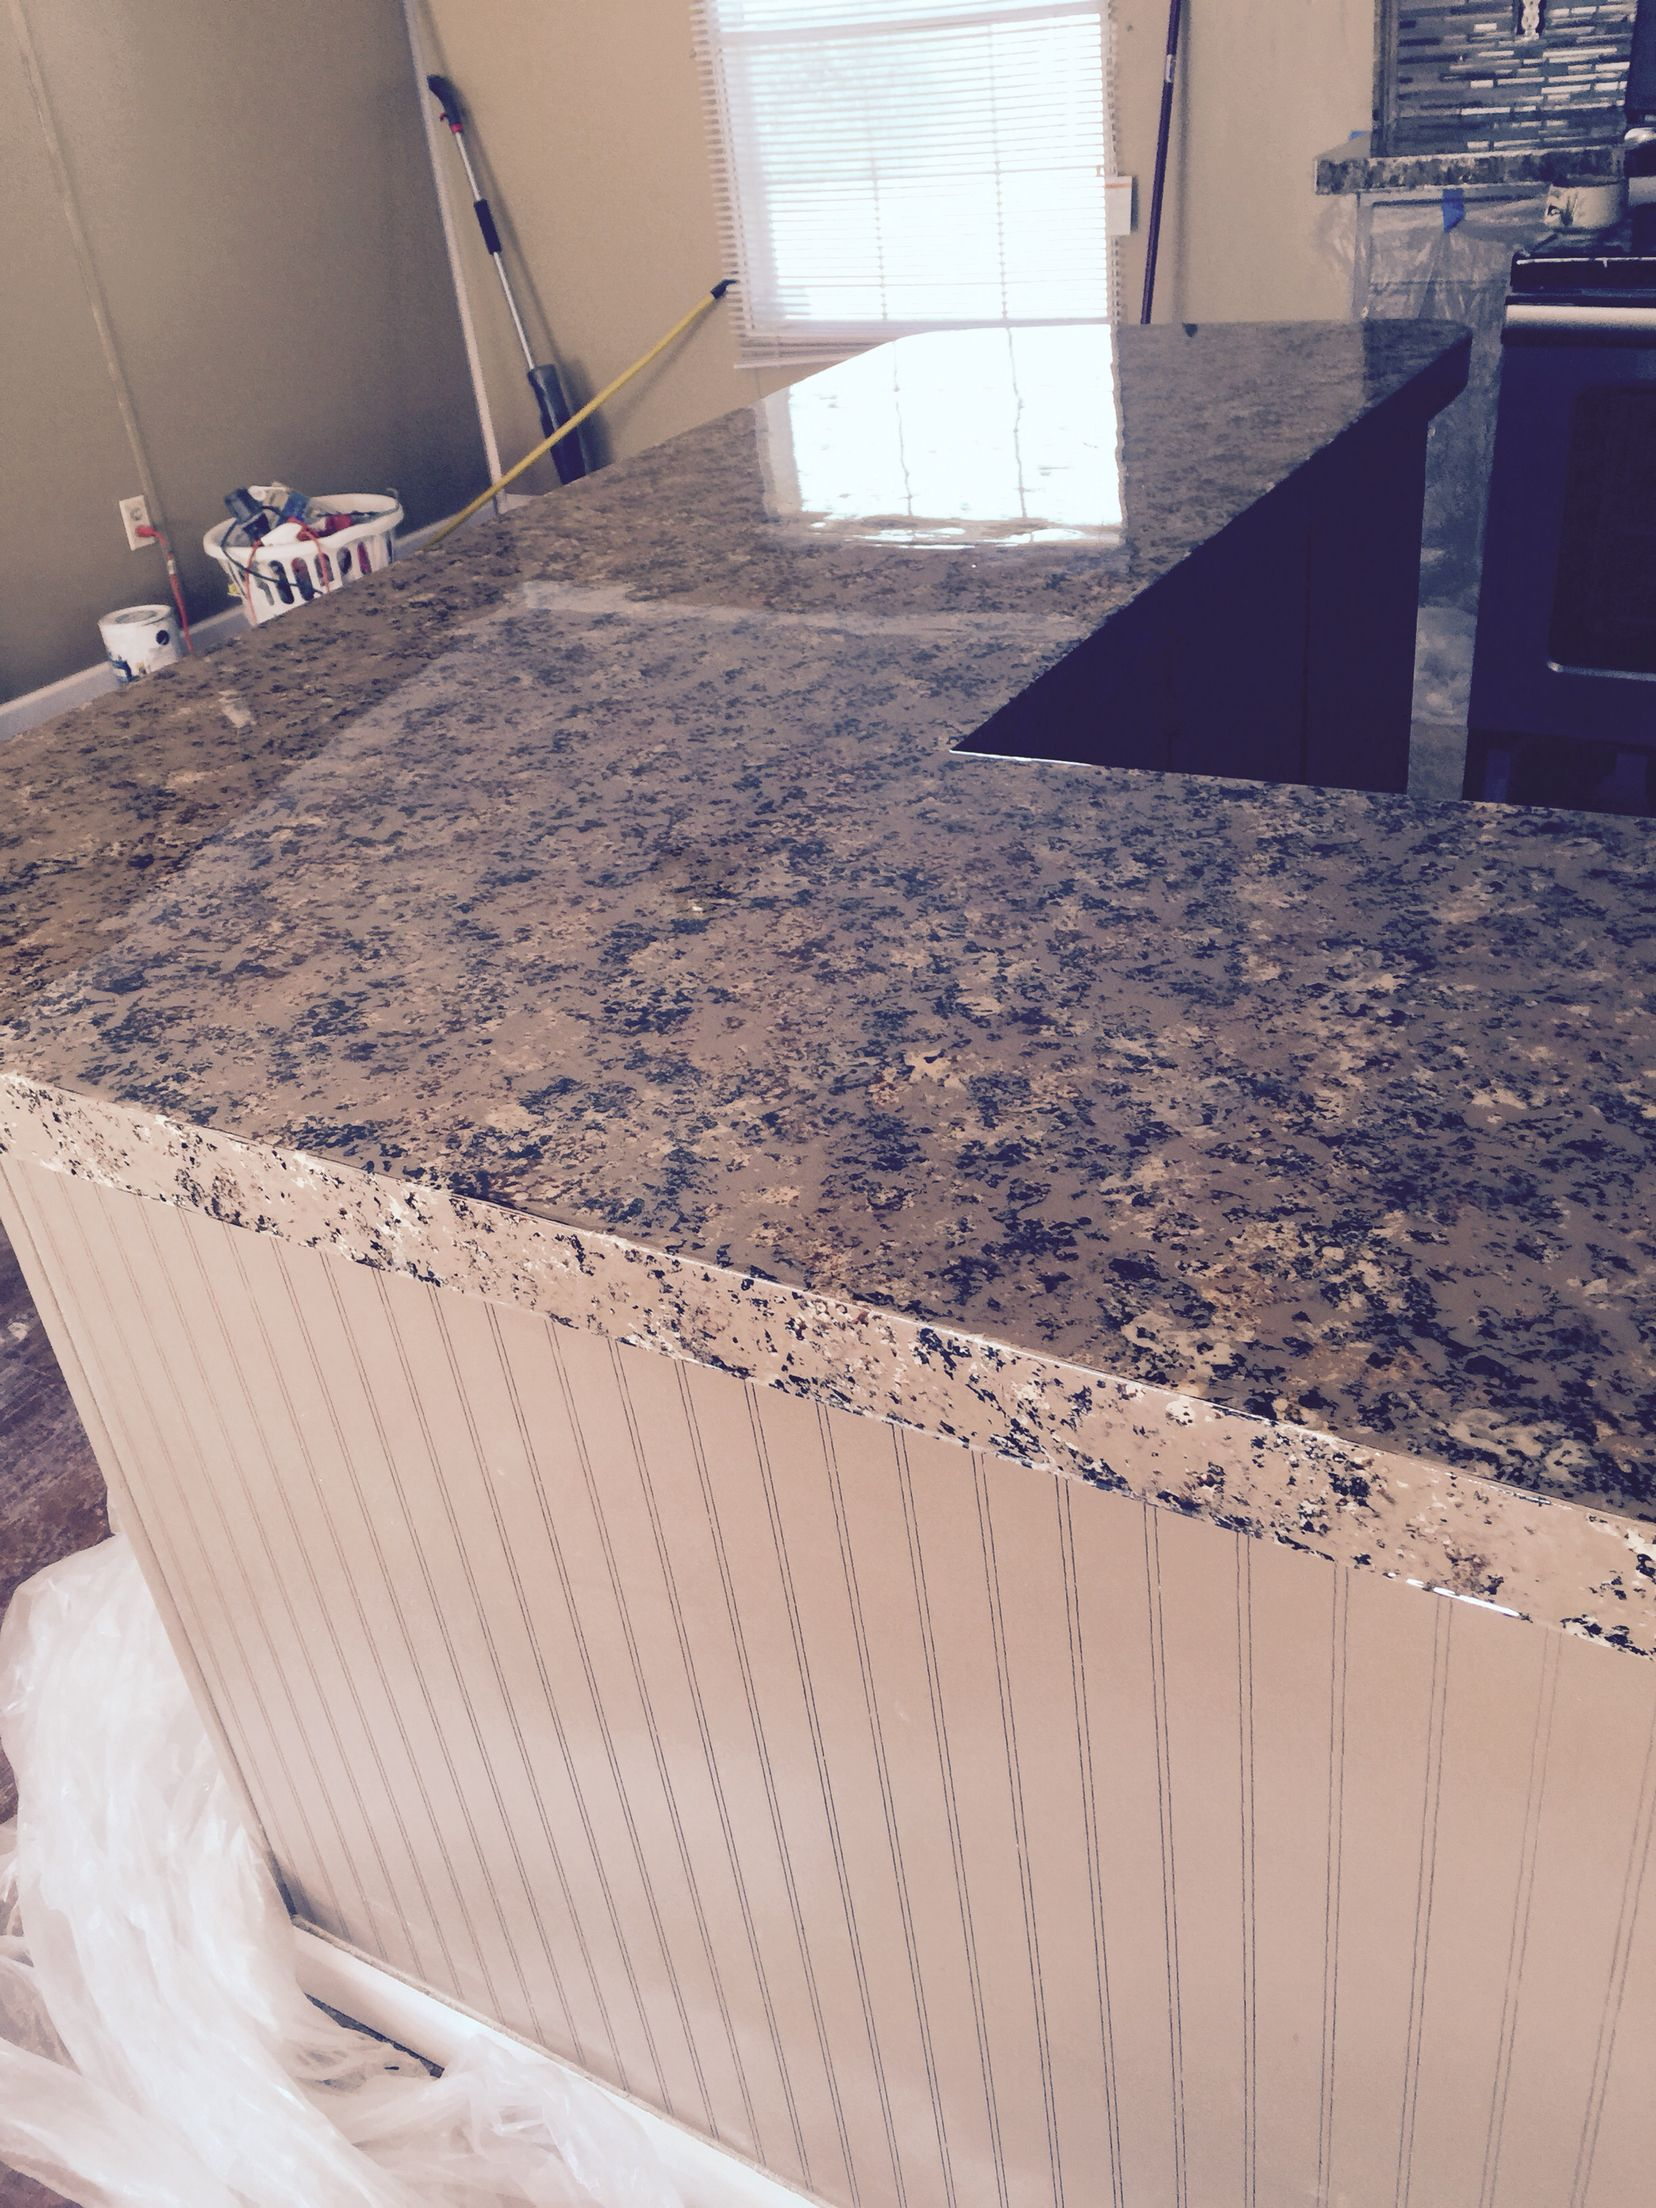 Giani Countertop Paint Instead Of Using Step 3 Clear Coat We Used An Epoxy Top Coat Turned Out Excell Giani